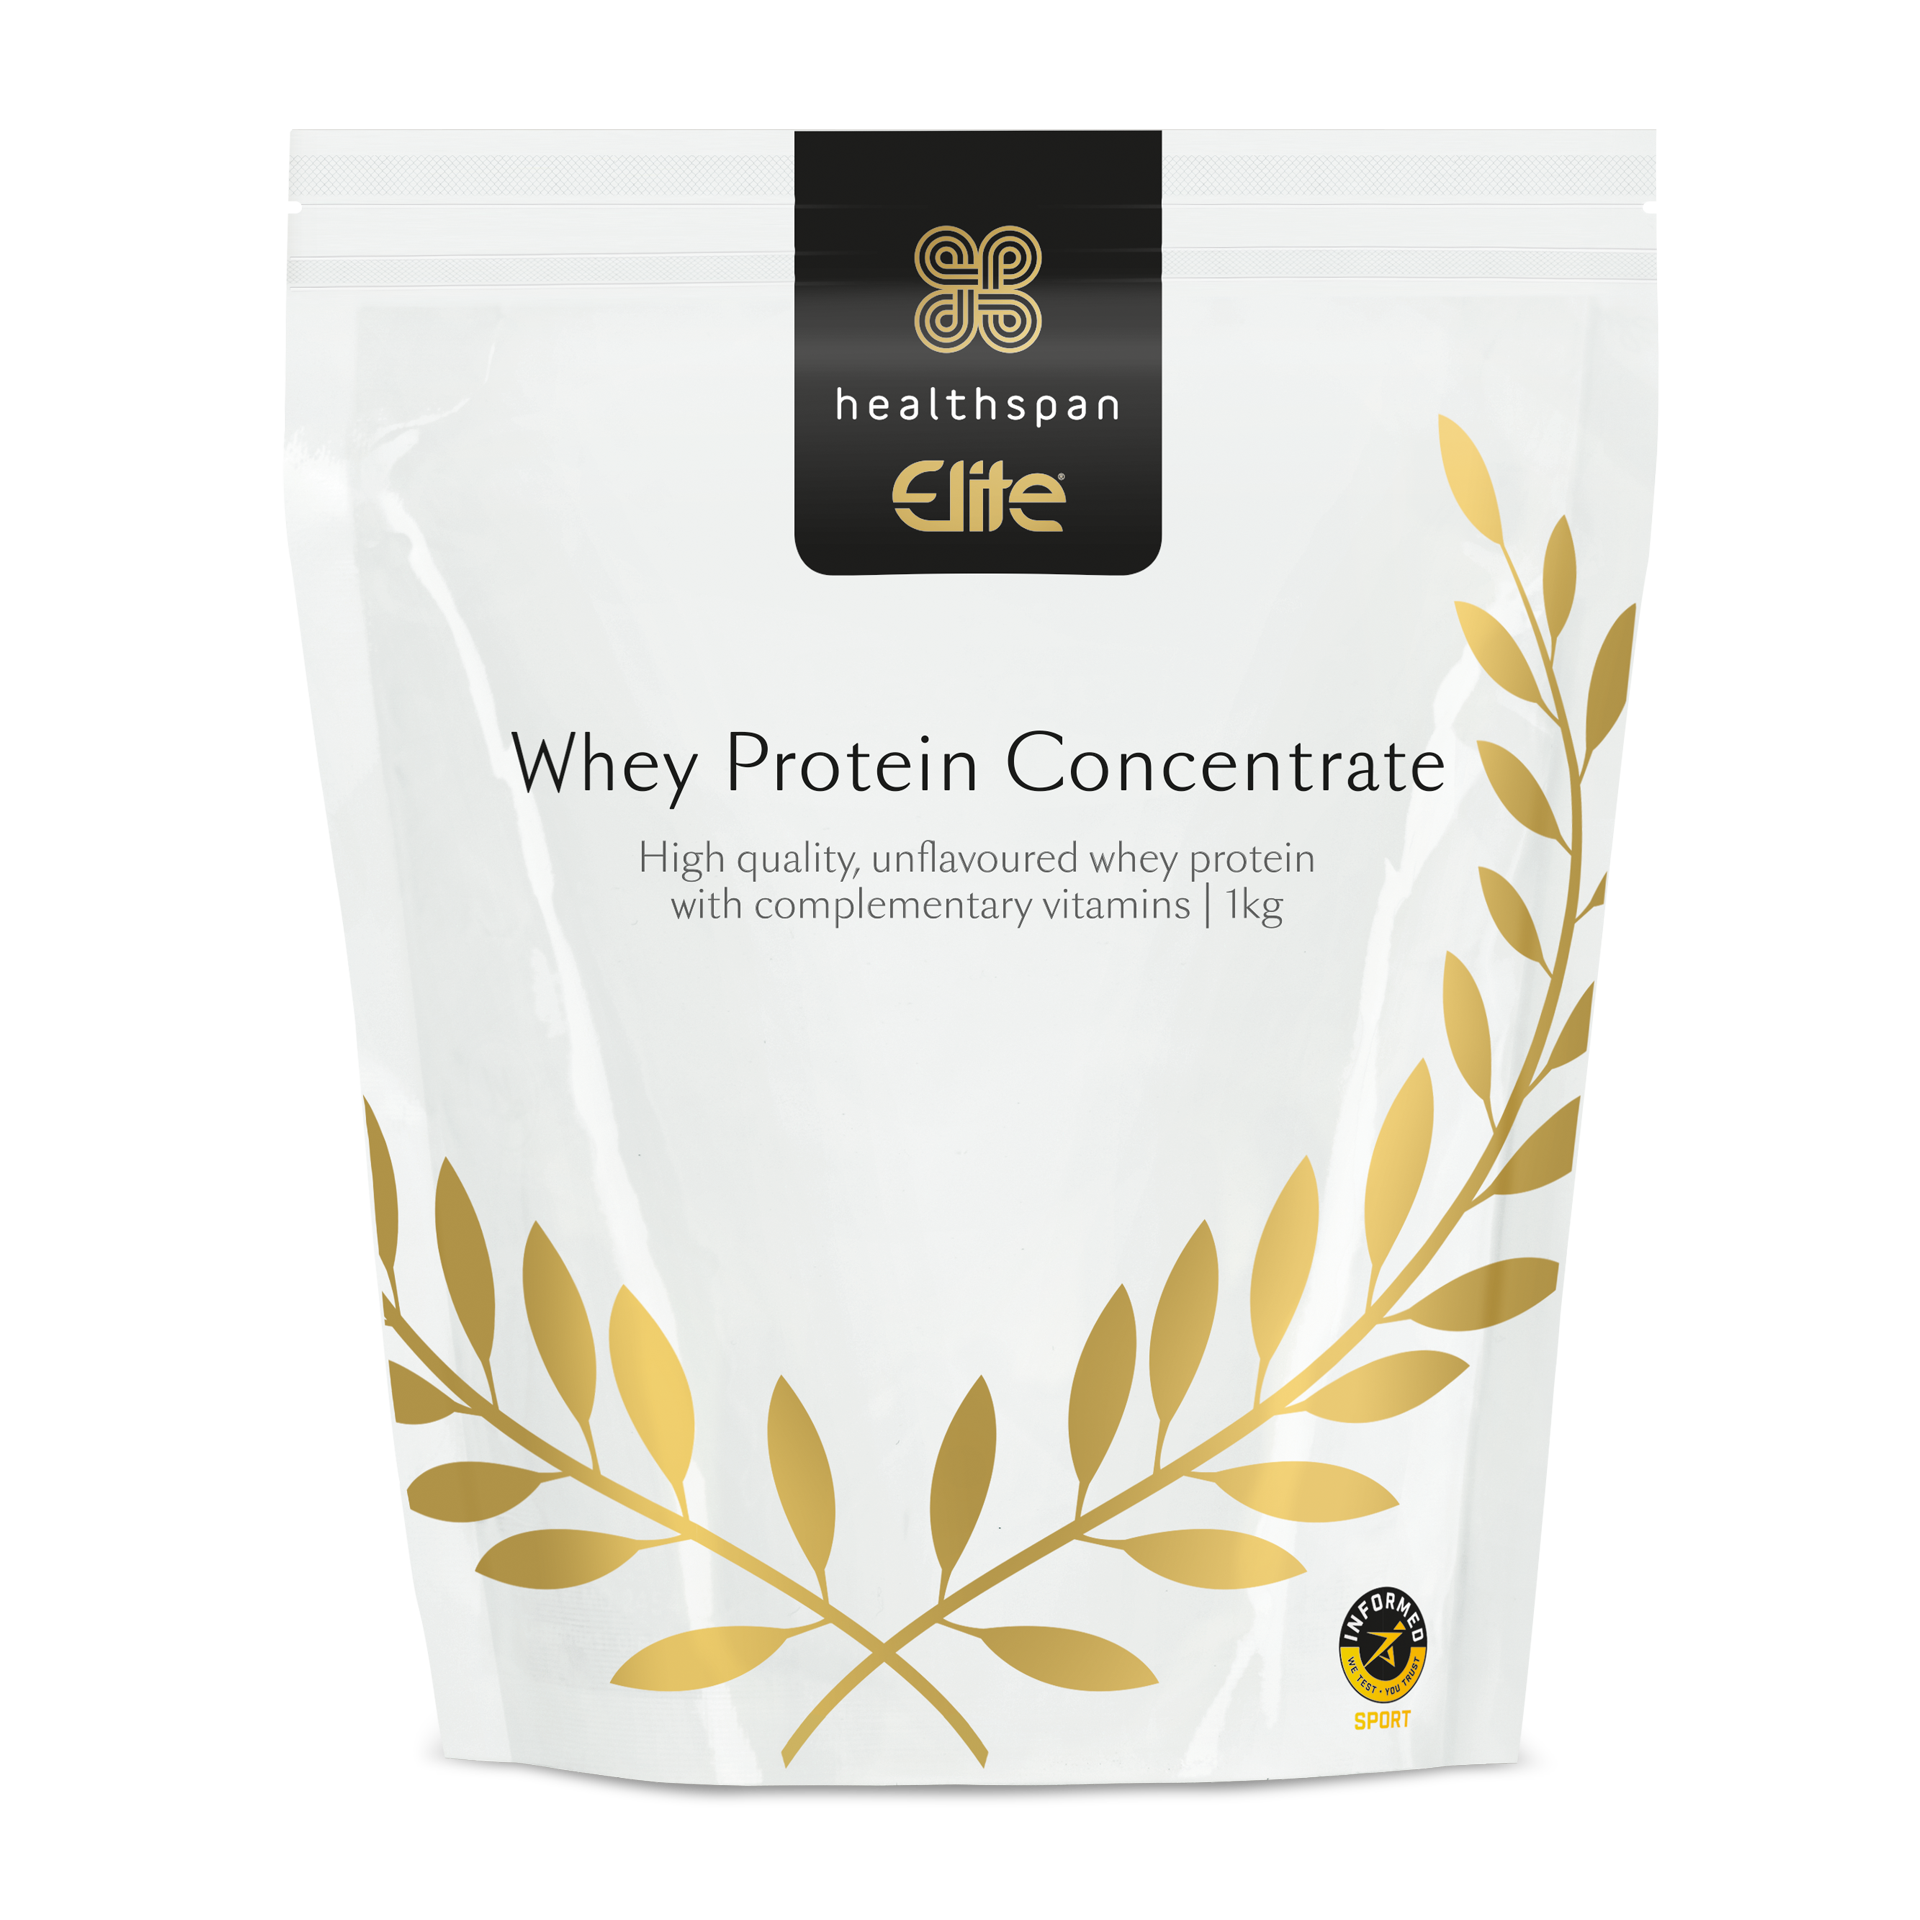 Whey Protein Concentrate pouch front